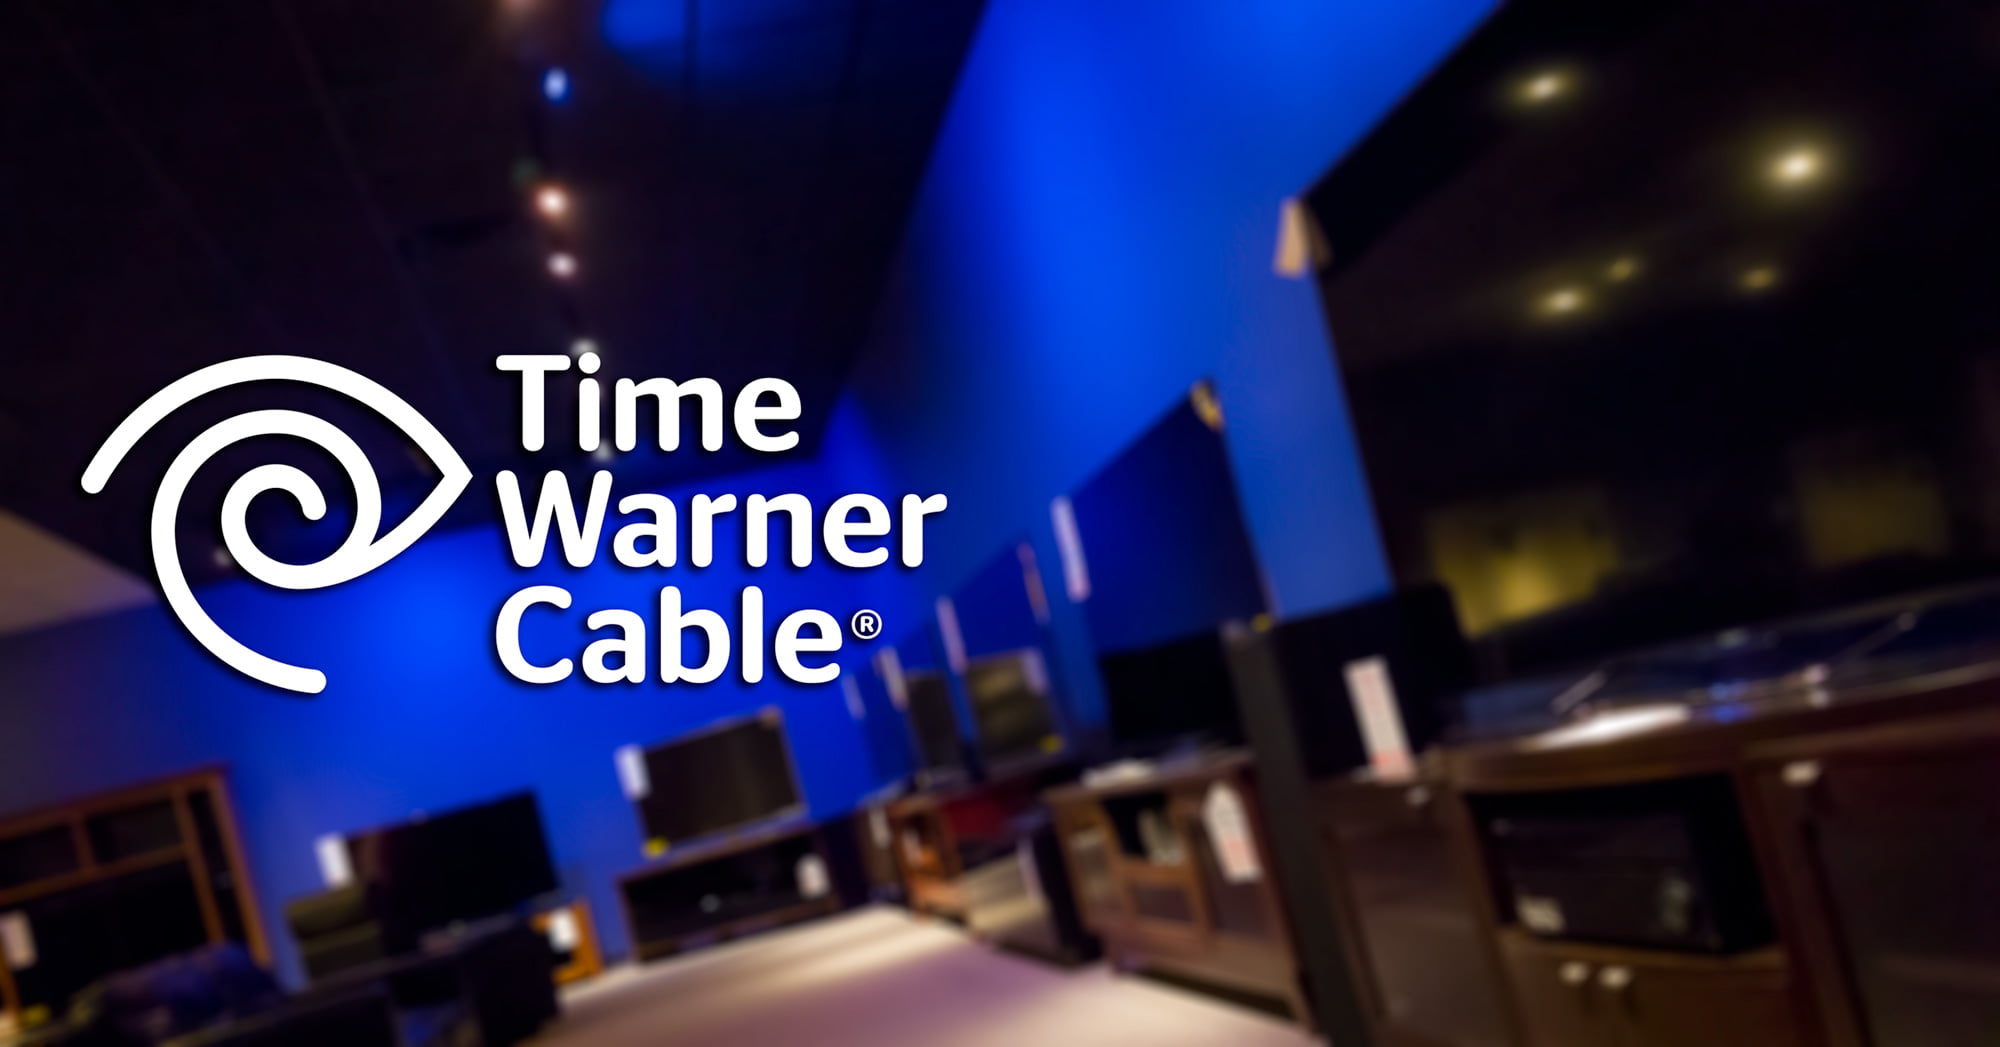 Time Warner Cable Phone Email Settings: Get to know about setting up an email account on time warner cable.rh:rrcomlogin.com,Design